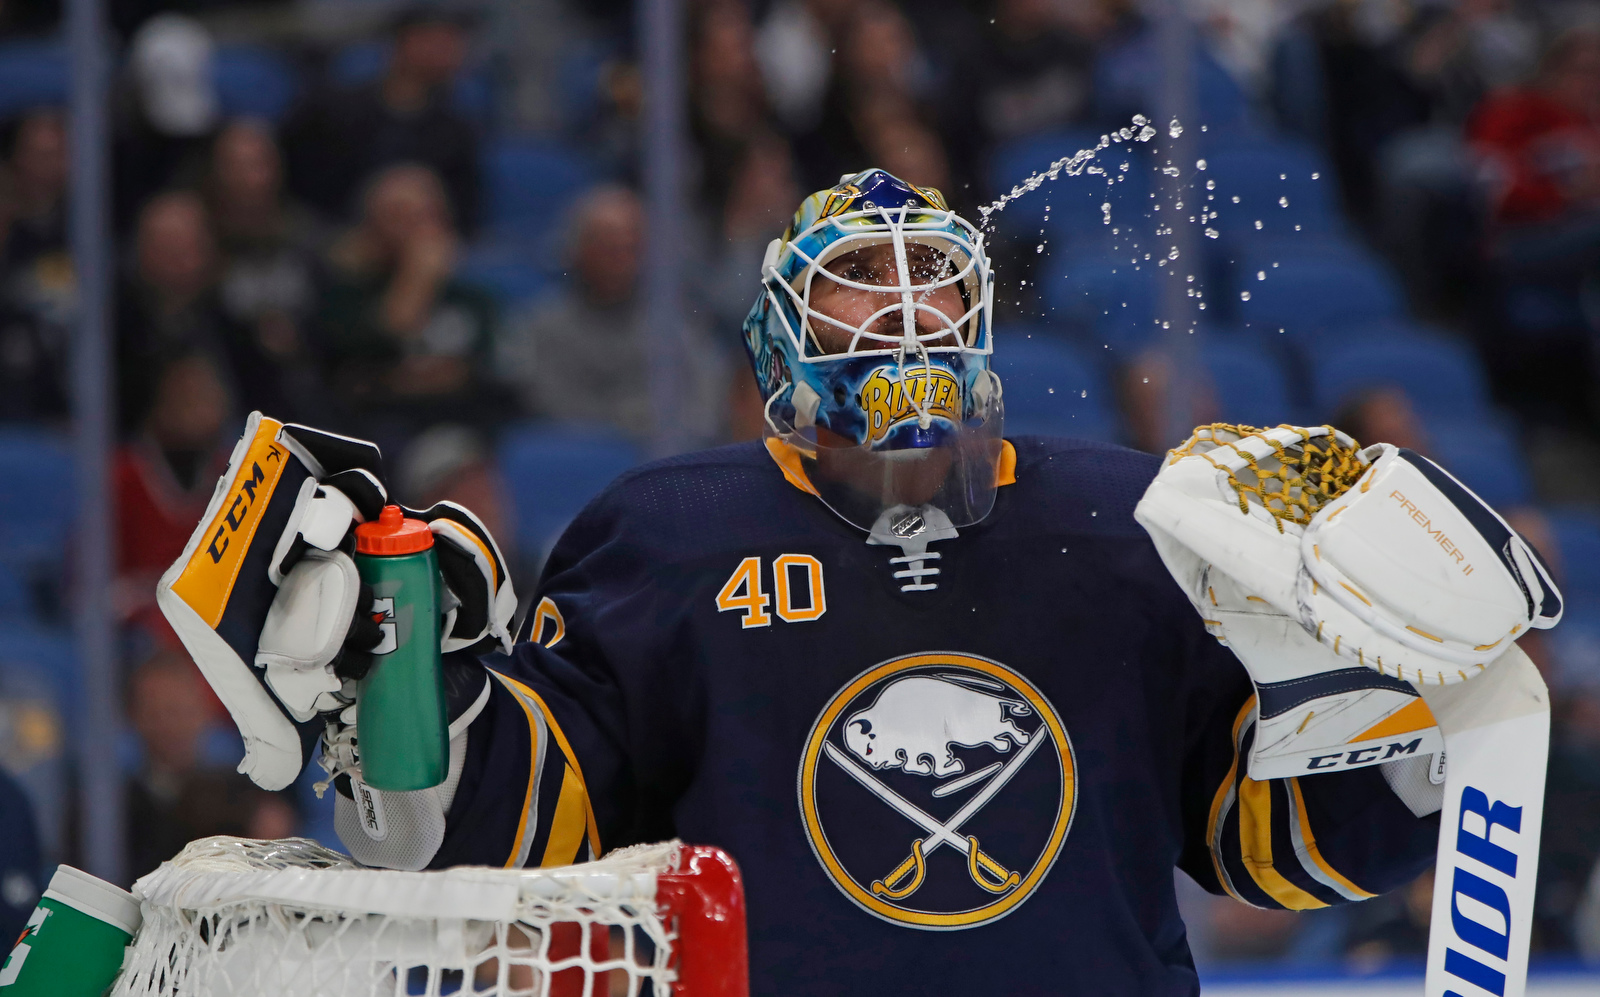 Carter Hutton to start for Sabres vs. Capitals; Danny ORegan, Scott Wilson to play